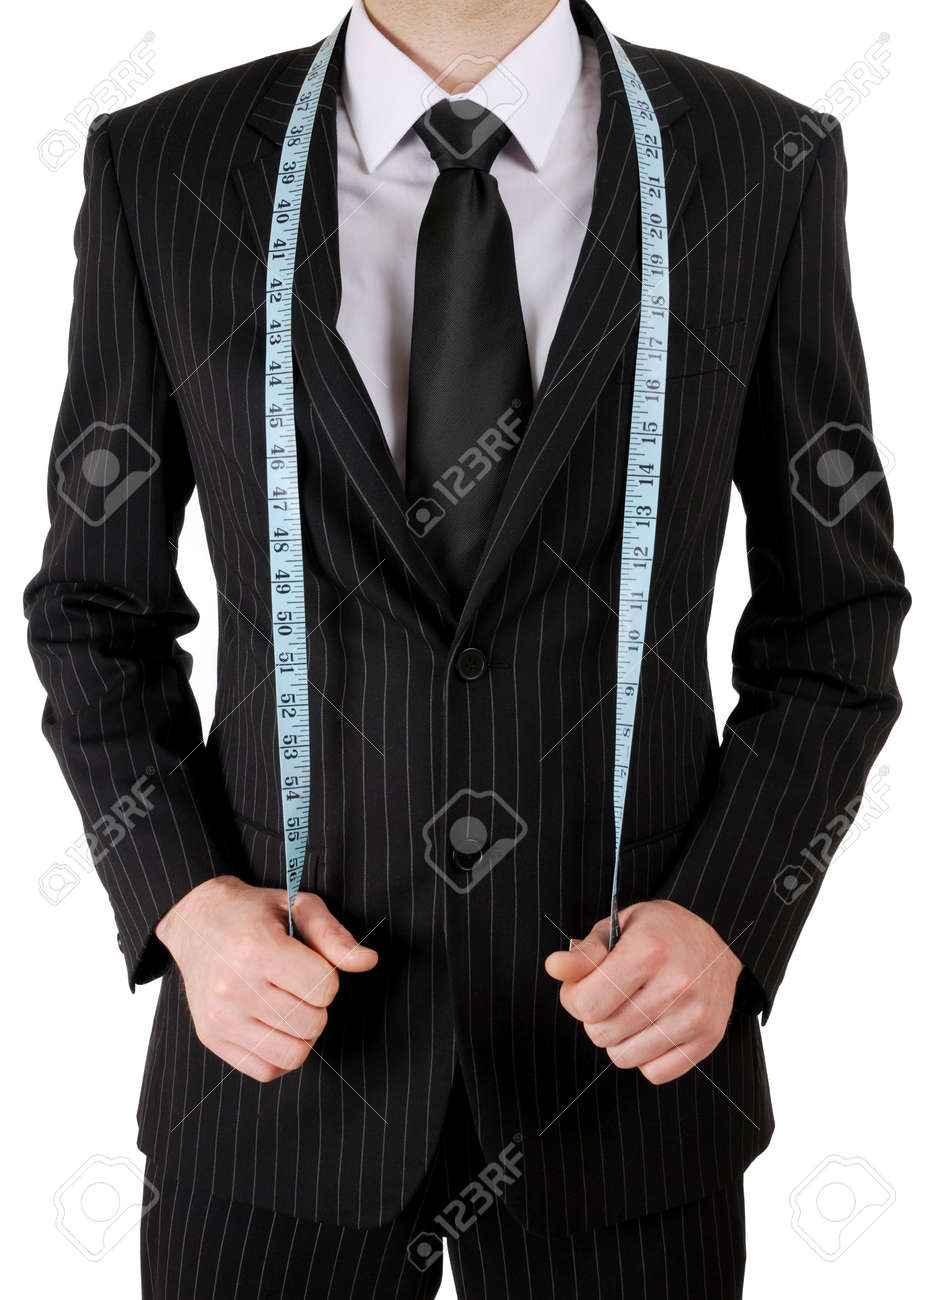 This is an image of business man wearing a tape measure across his suit. Stock Photo - 5210600